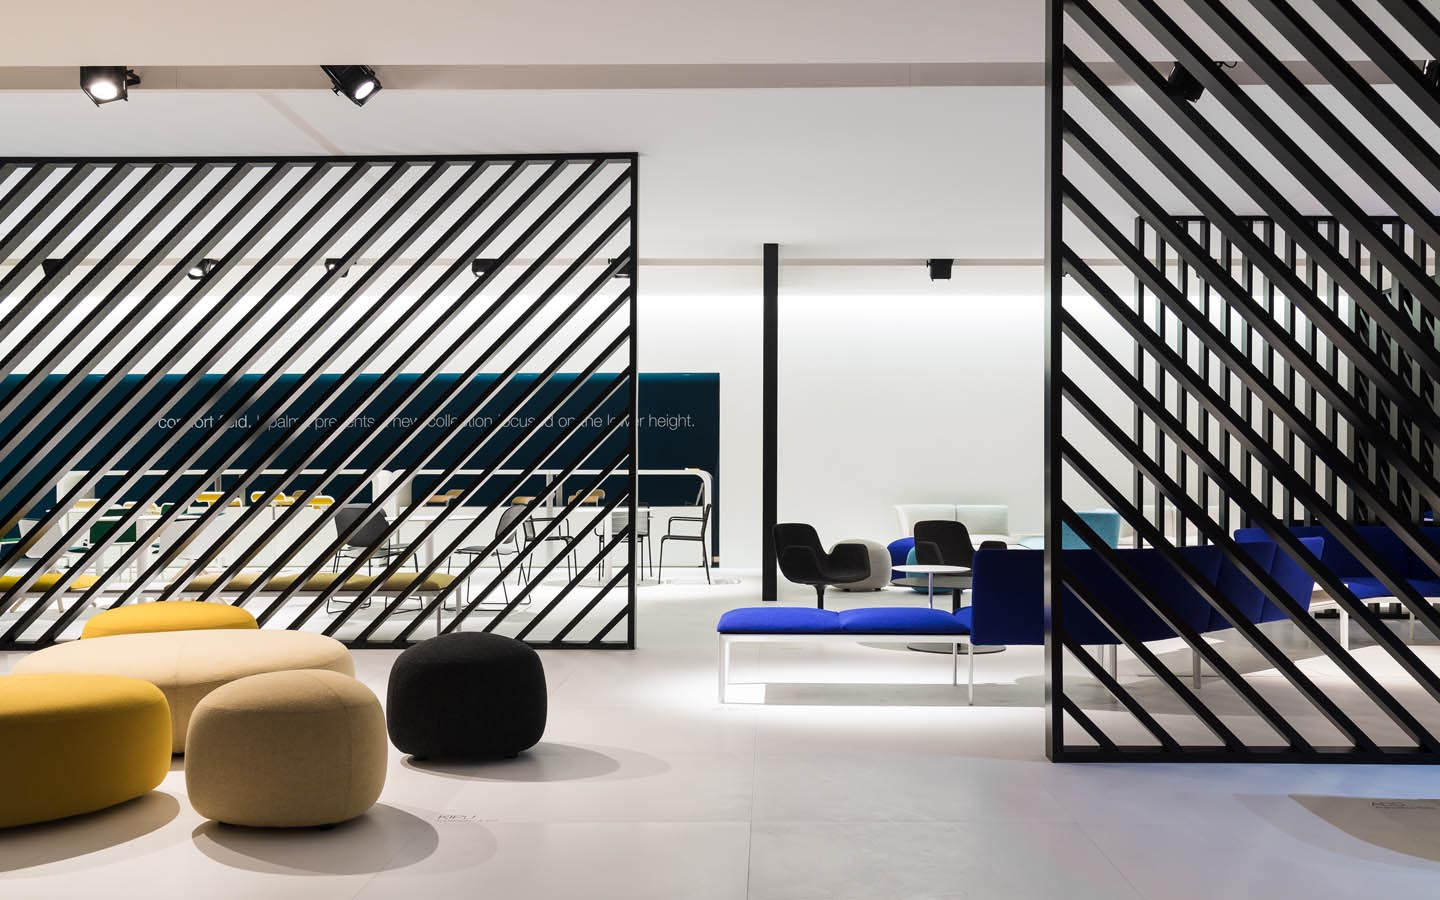 Area domus kipu for Space fabric nz